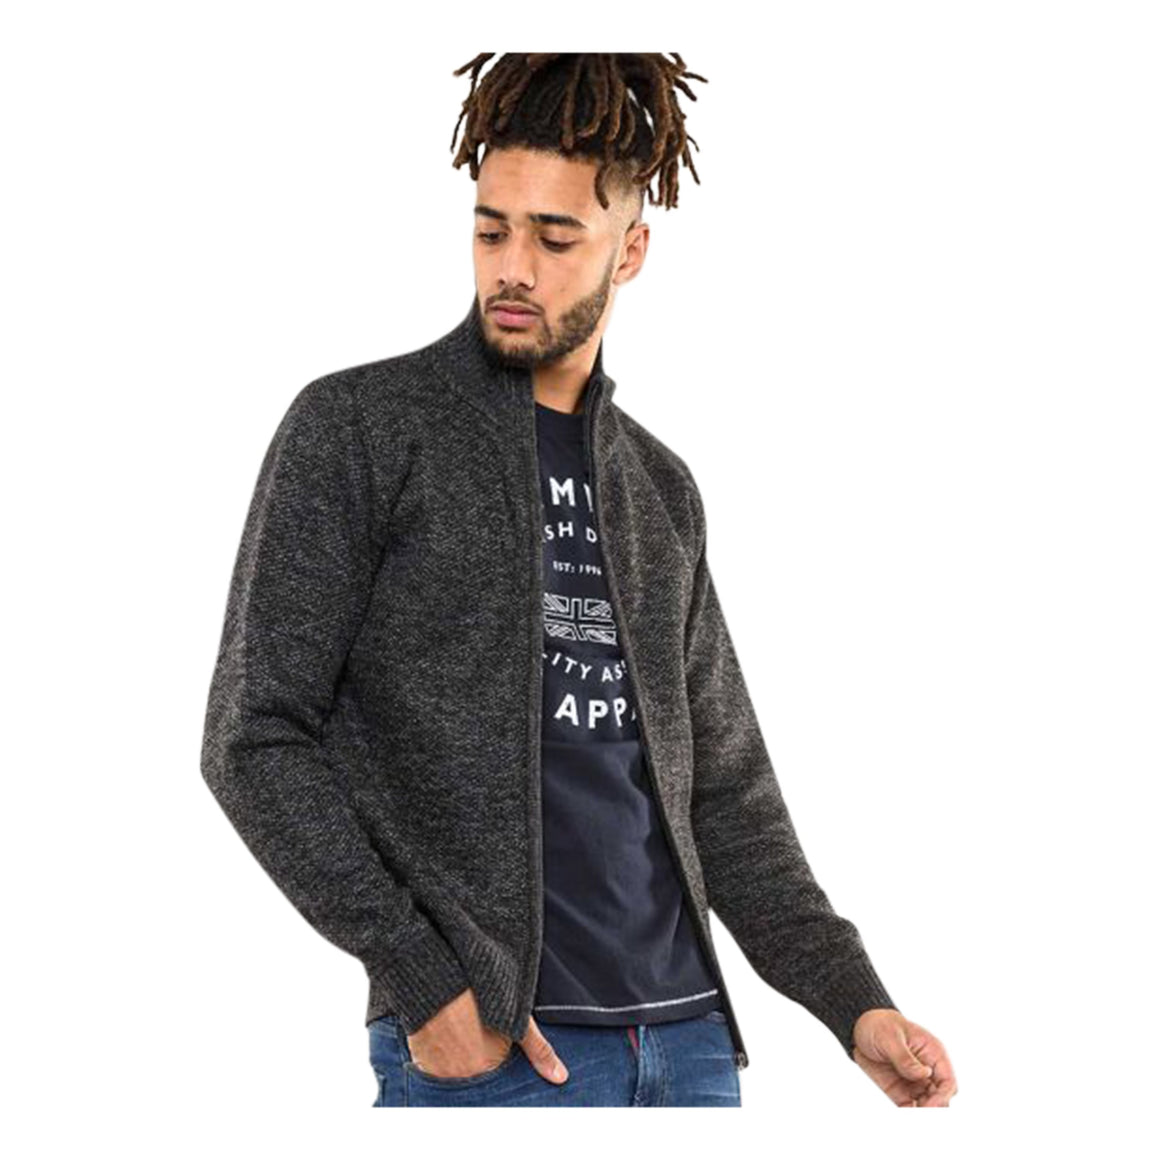 Sherwood Fleece Lined Cardigan for Men in Black Marl